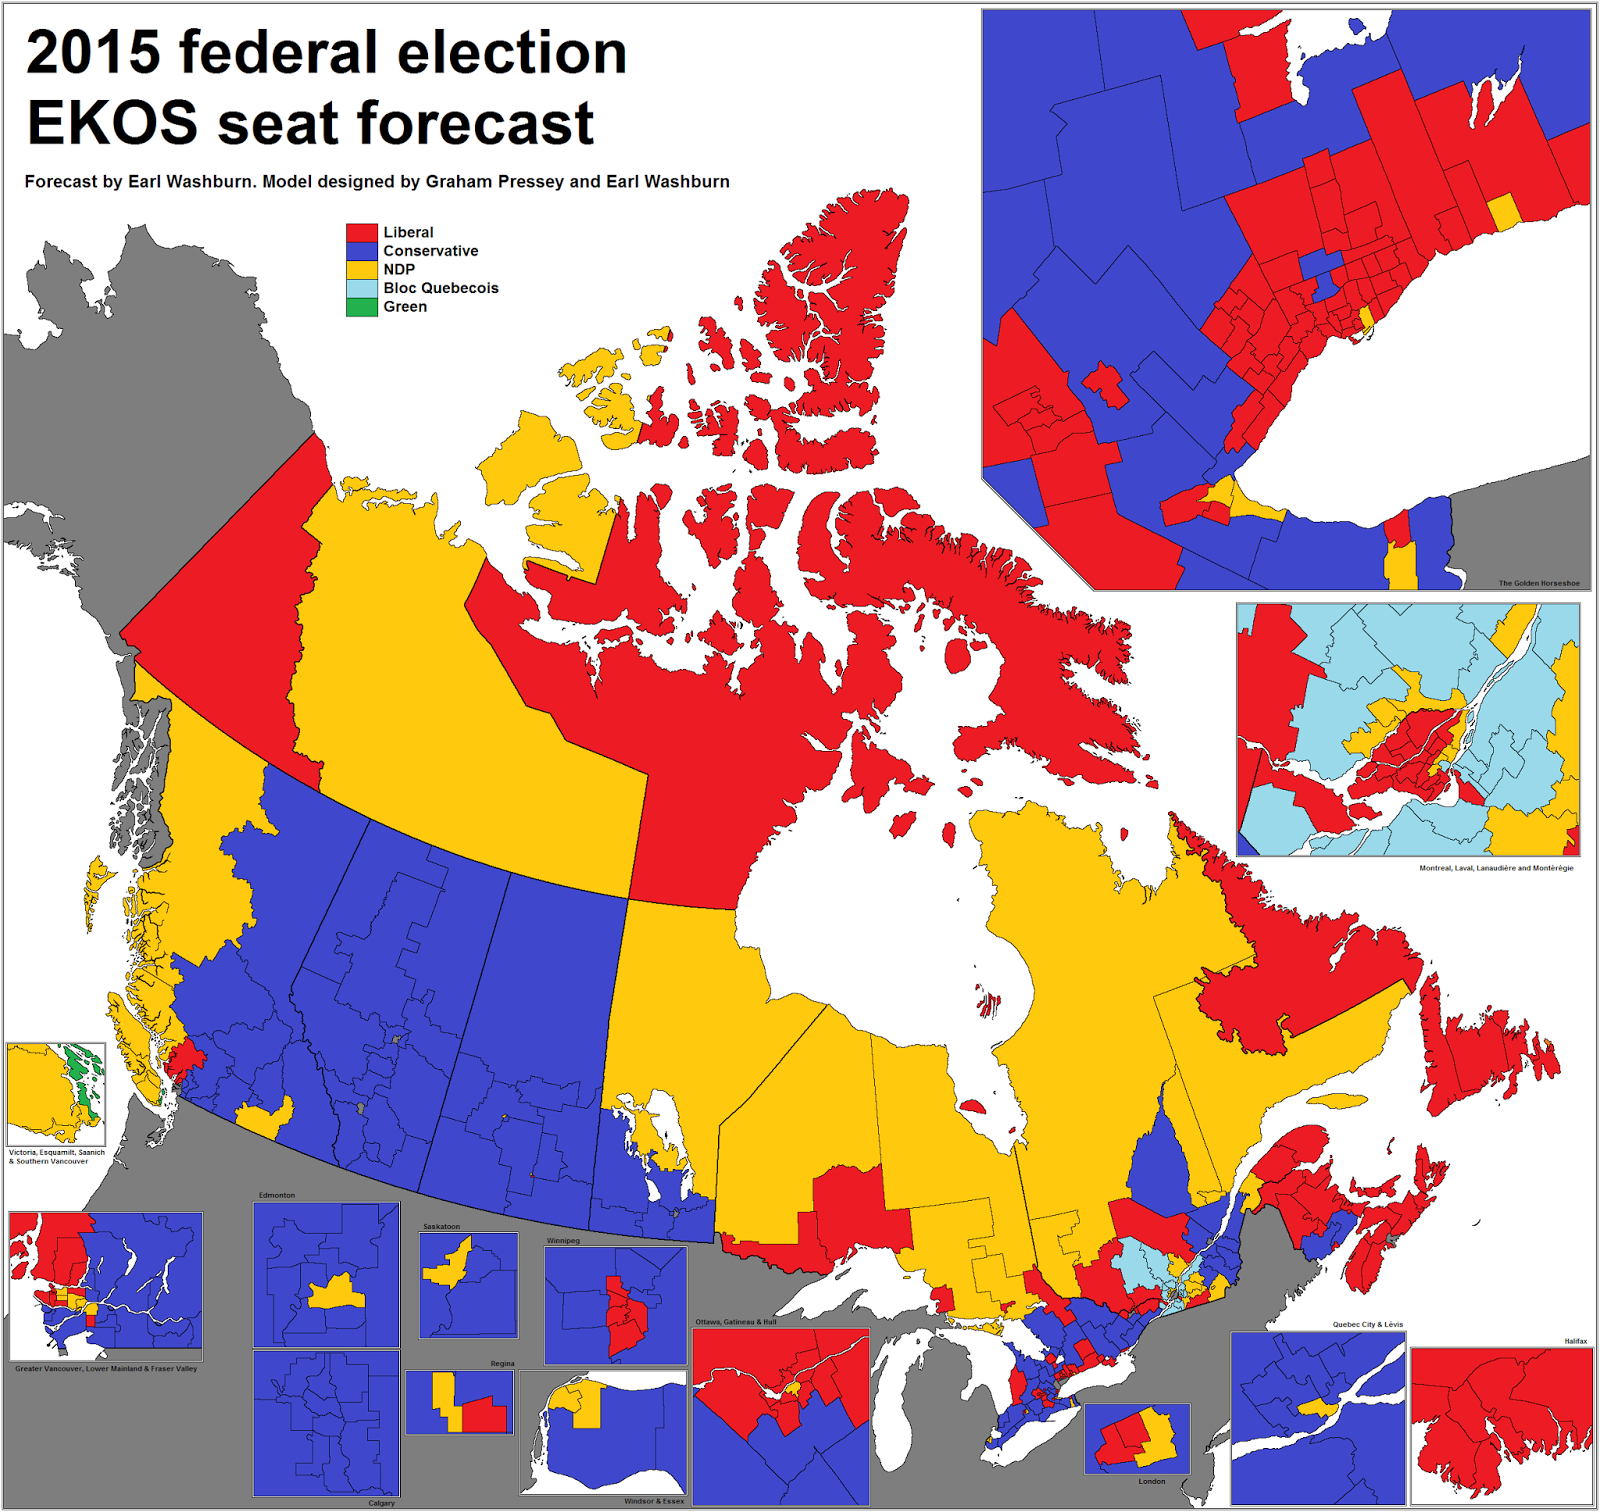 Canadian Election Atlas Ekos Seat Forecast For The 2015